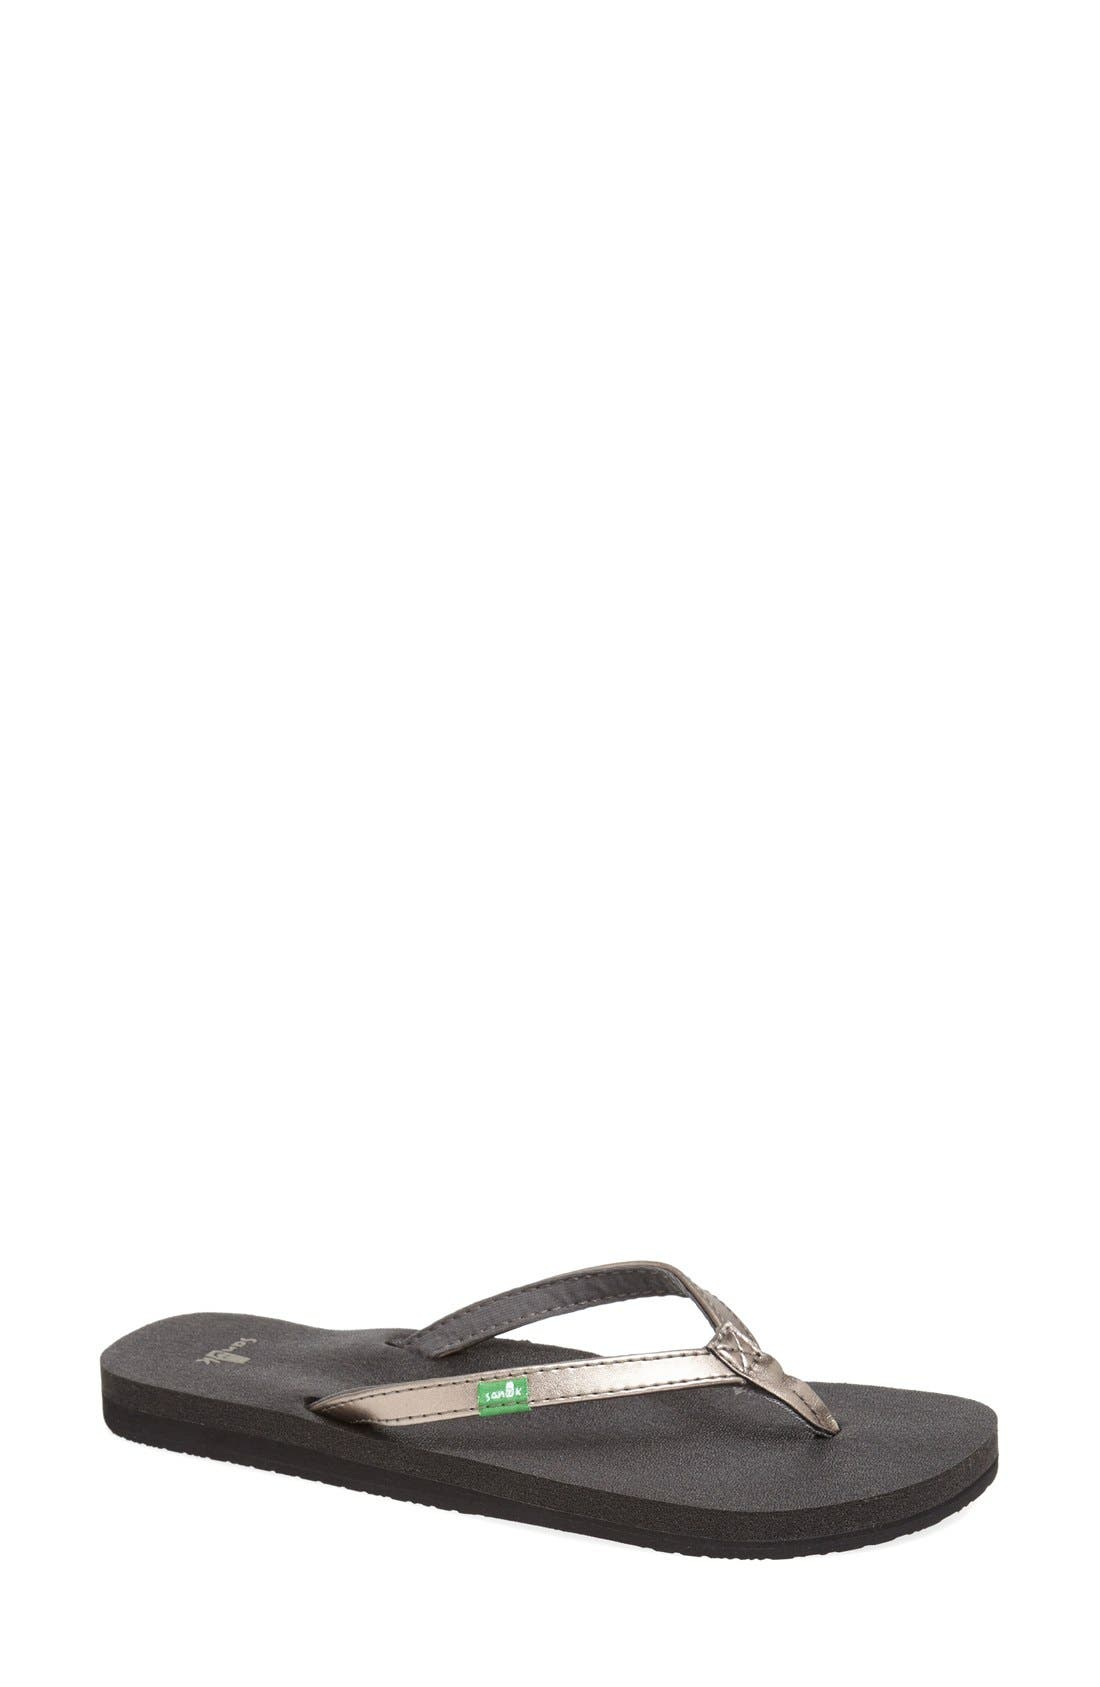 'Yoga Joy' Metallic Flip Flop,                             Main thumbnail 1, color,                             Pewter